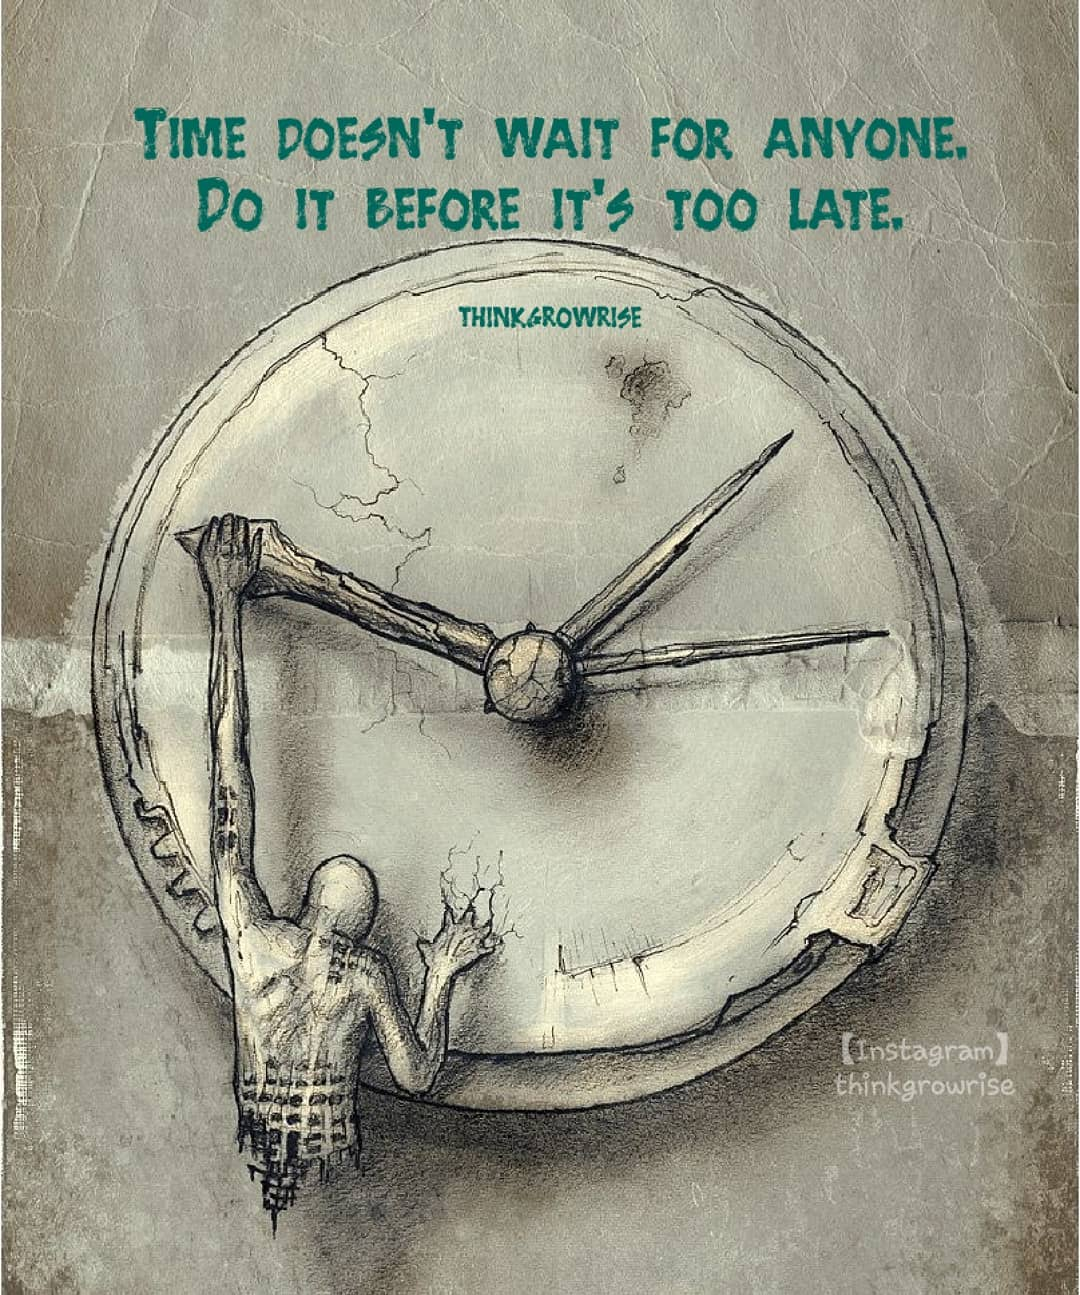 [Image] Don't wait the time will never be just right!